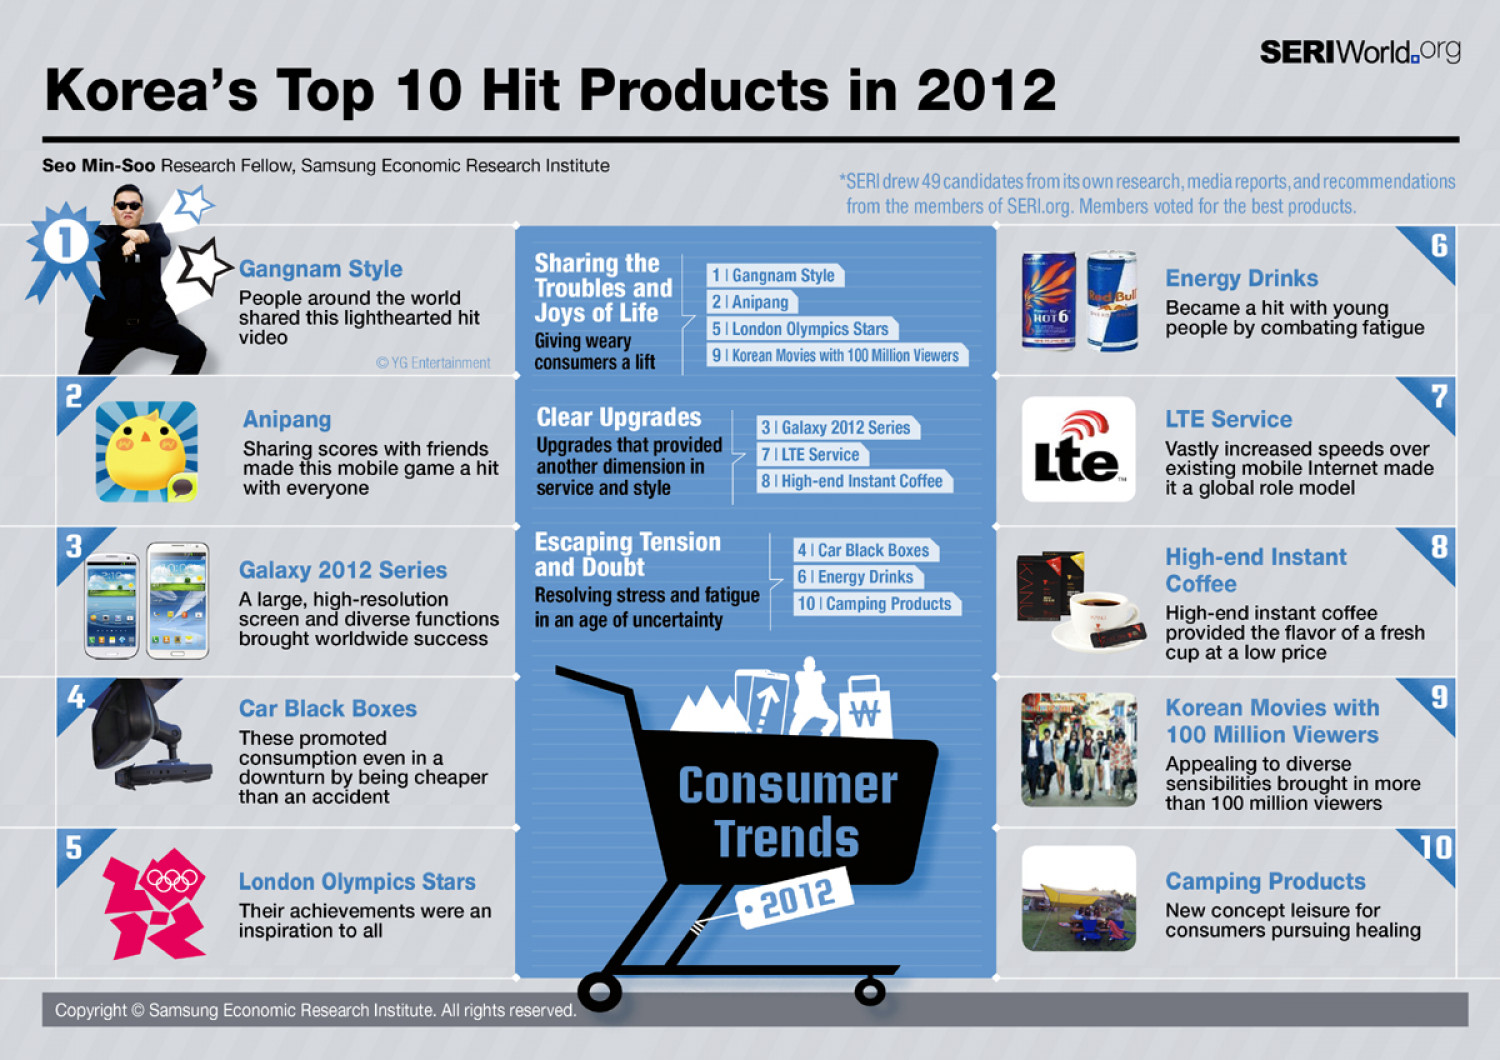 Korea's Top 10 Hit Exports of 2012 Infographic